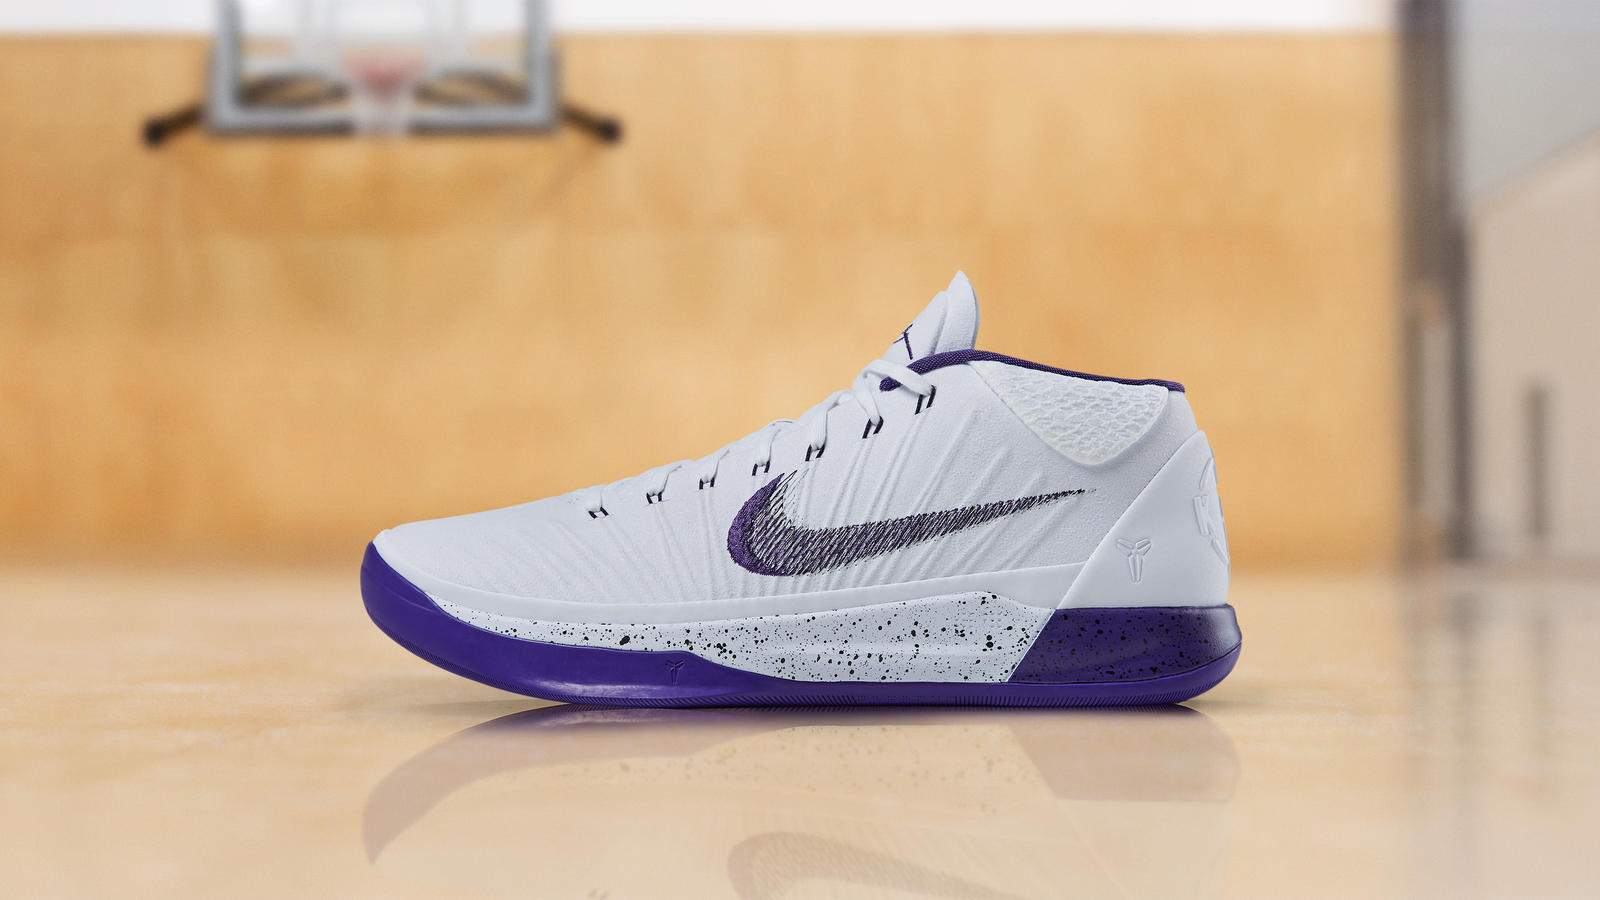 dccad9199576 kobe ad mid Archives - WearTesters